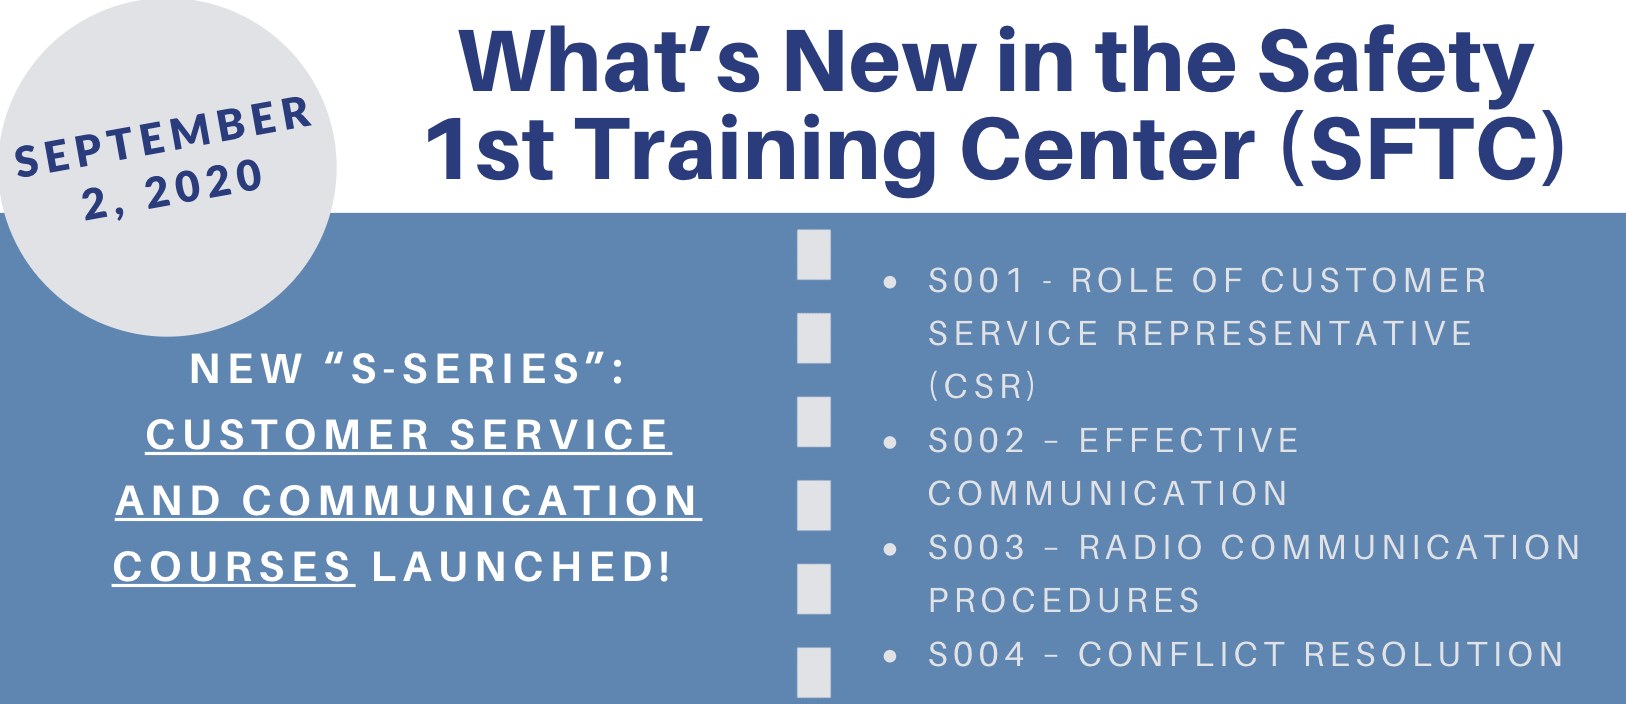 What's New in the Safety 1st Training Center (SFTC)